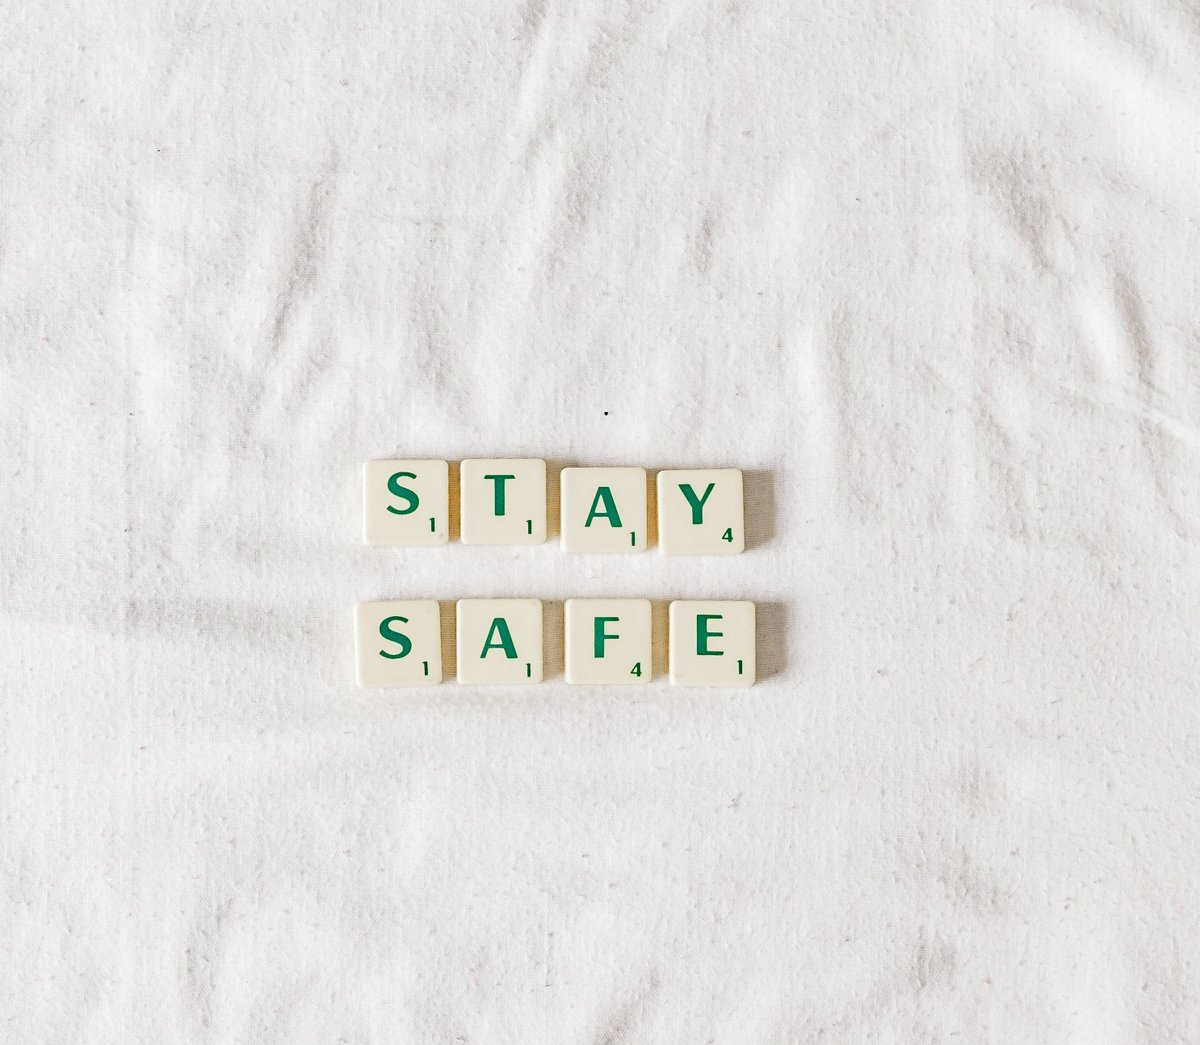 Take care and stay safe everyone!  PC: Sincerely Media on Unsplash https://t.co/kBIRou61z3